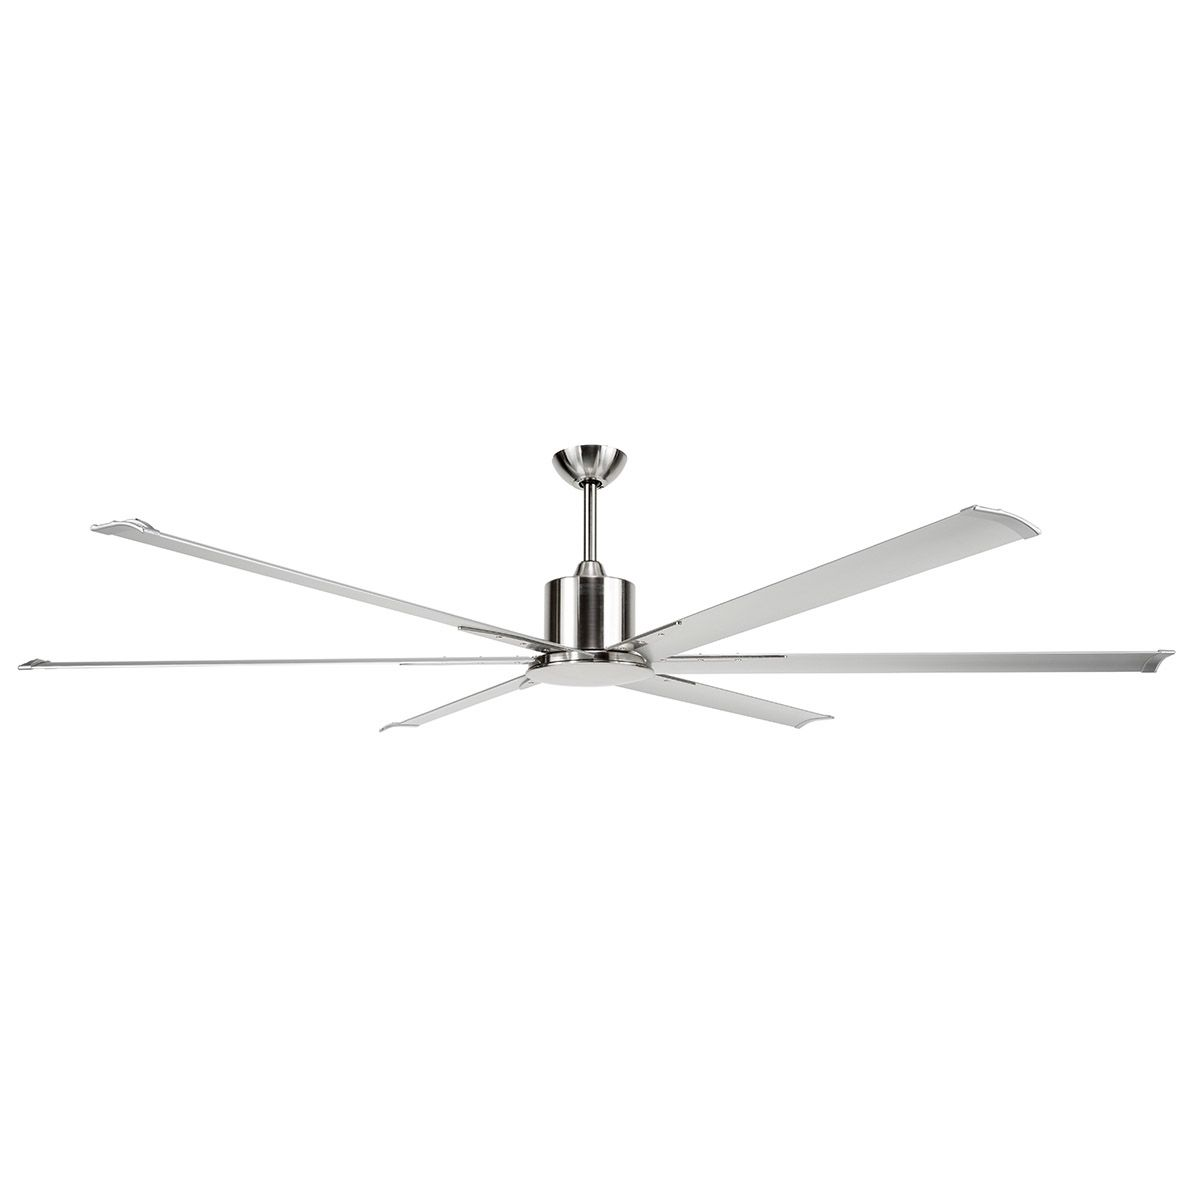 fan hunter extra price industrial with remote outdoor room inch indoor great ceilings fans black large light decoration fancy lowes ceiling without rustic